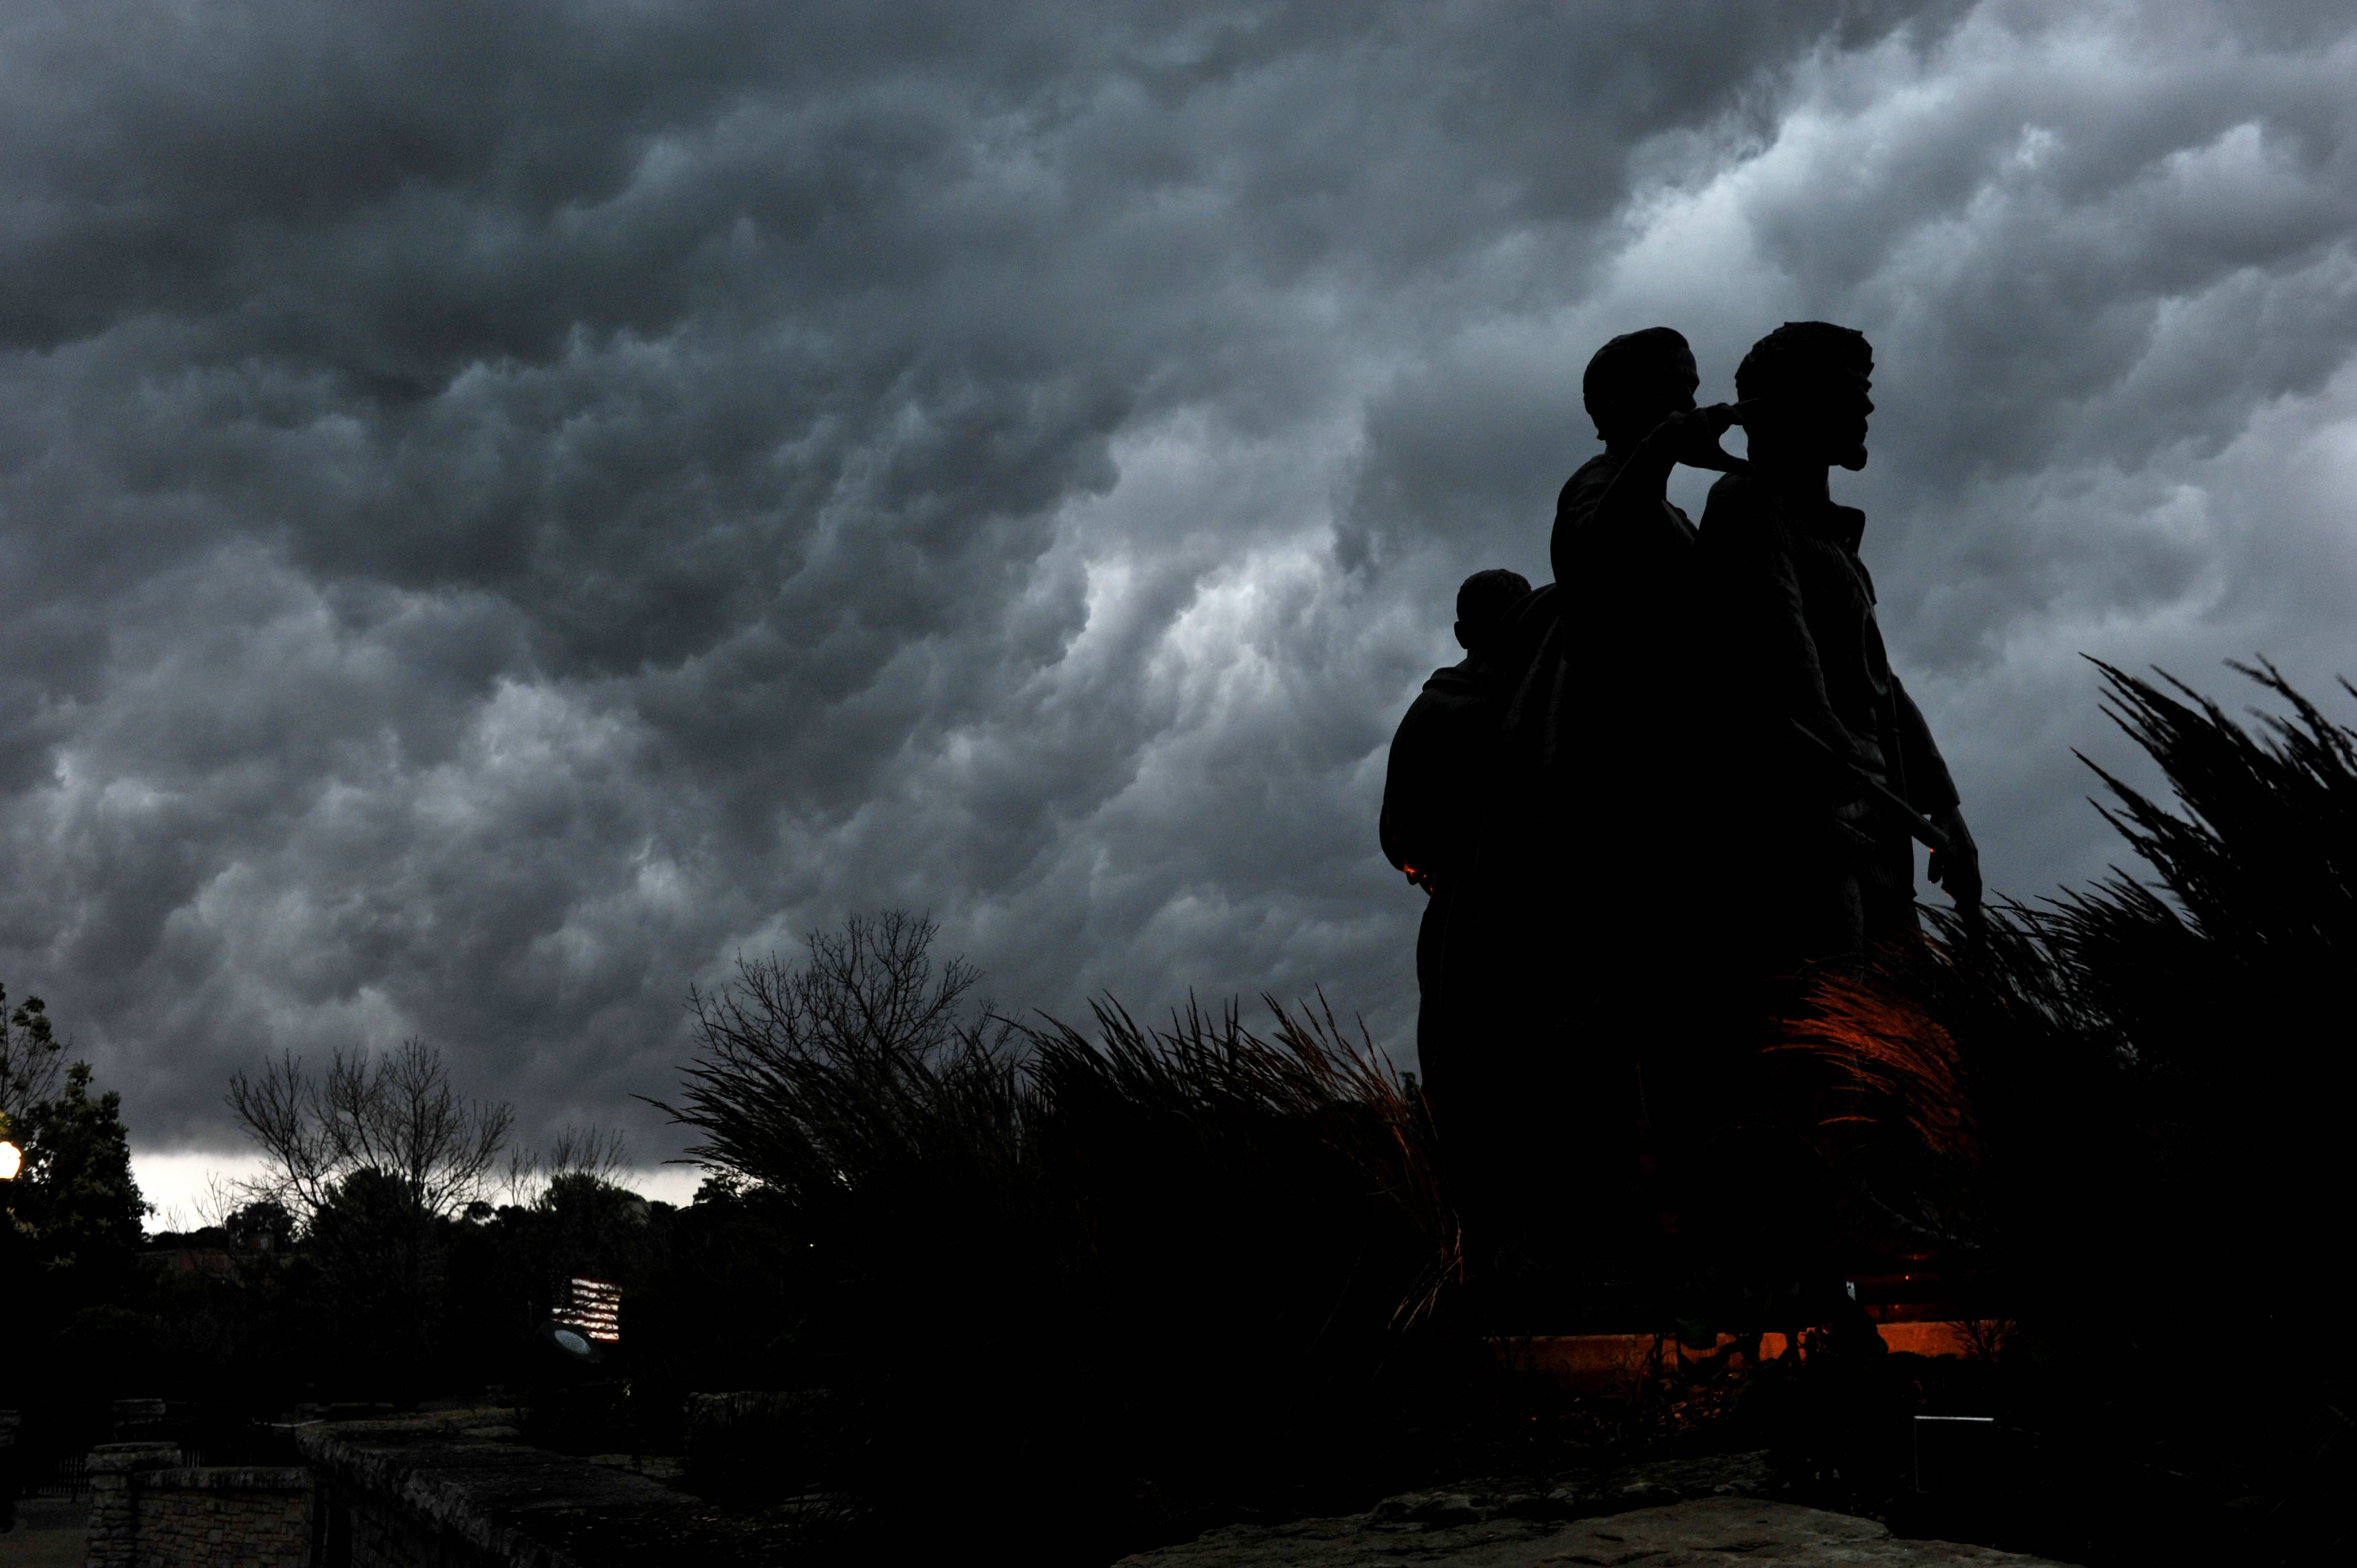 Dark storm clouds roll in near the Pioneer Family Memorial on the Fox River in Elgin on Monday evening.